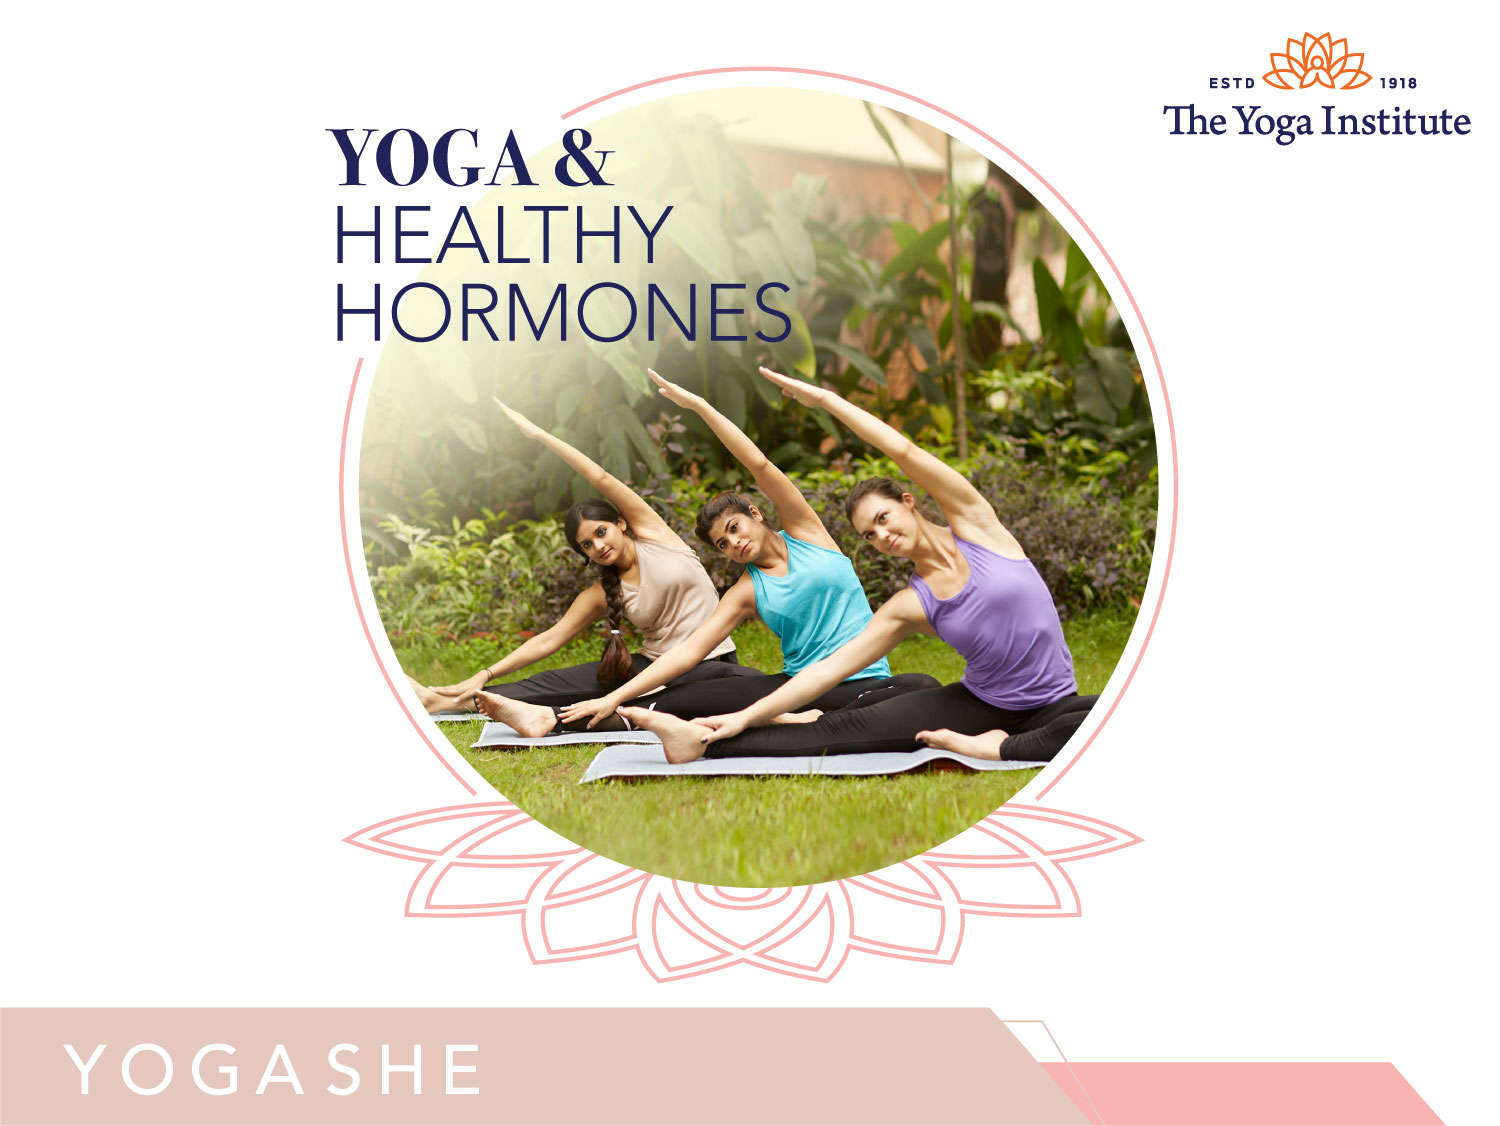 yoga and healthy hormones